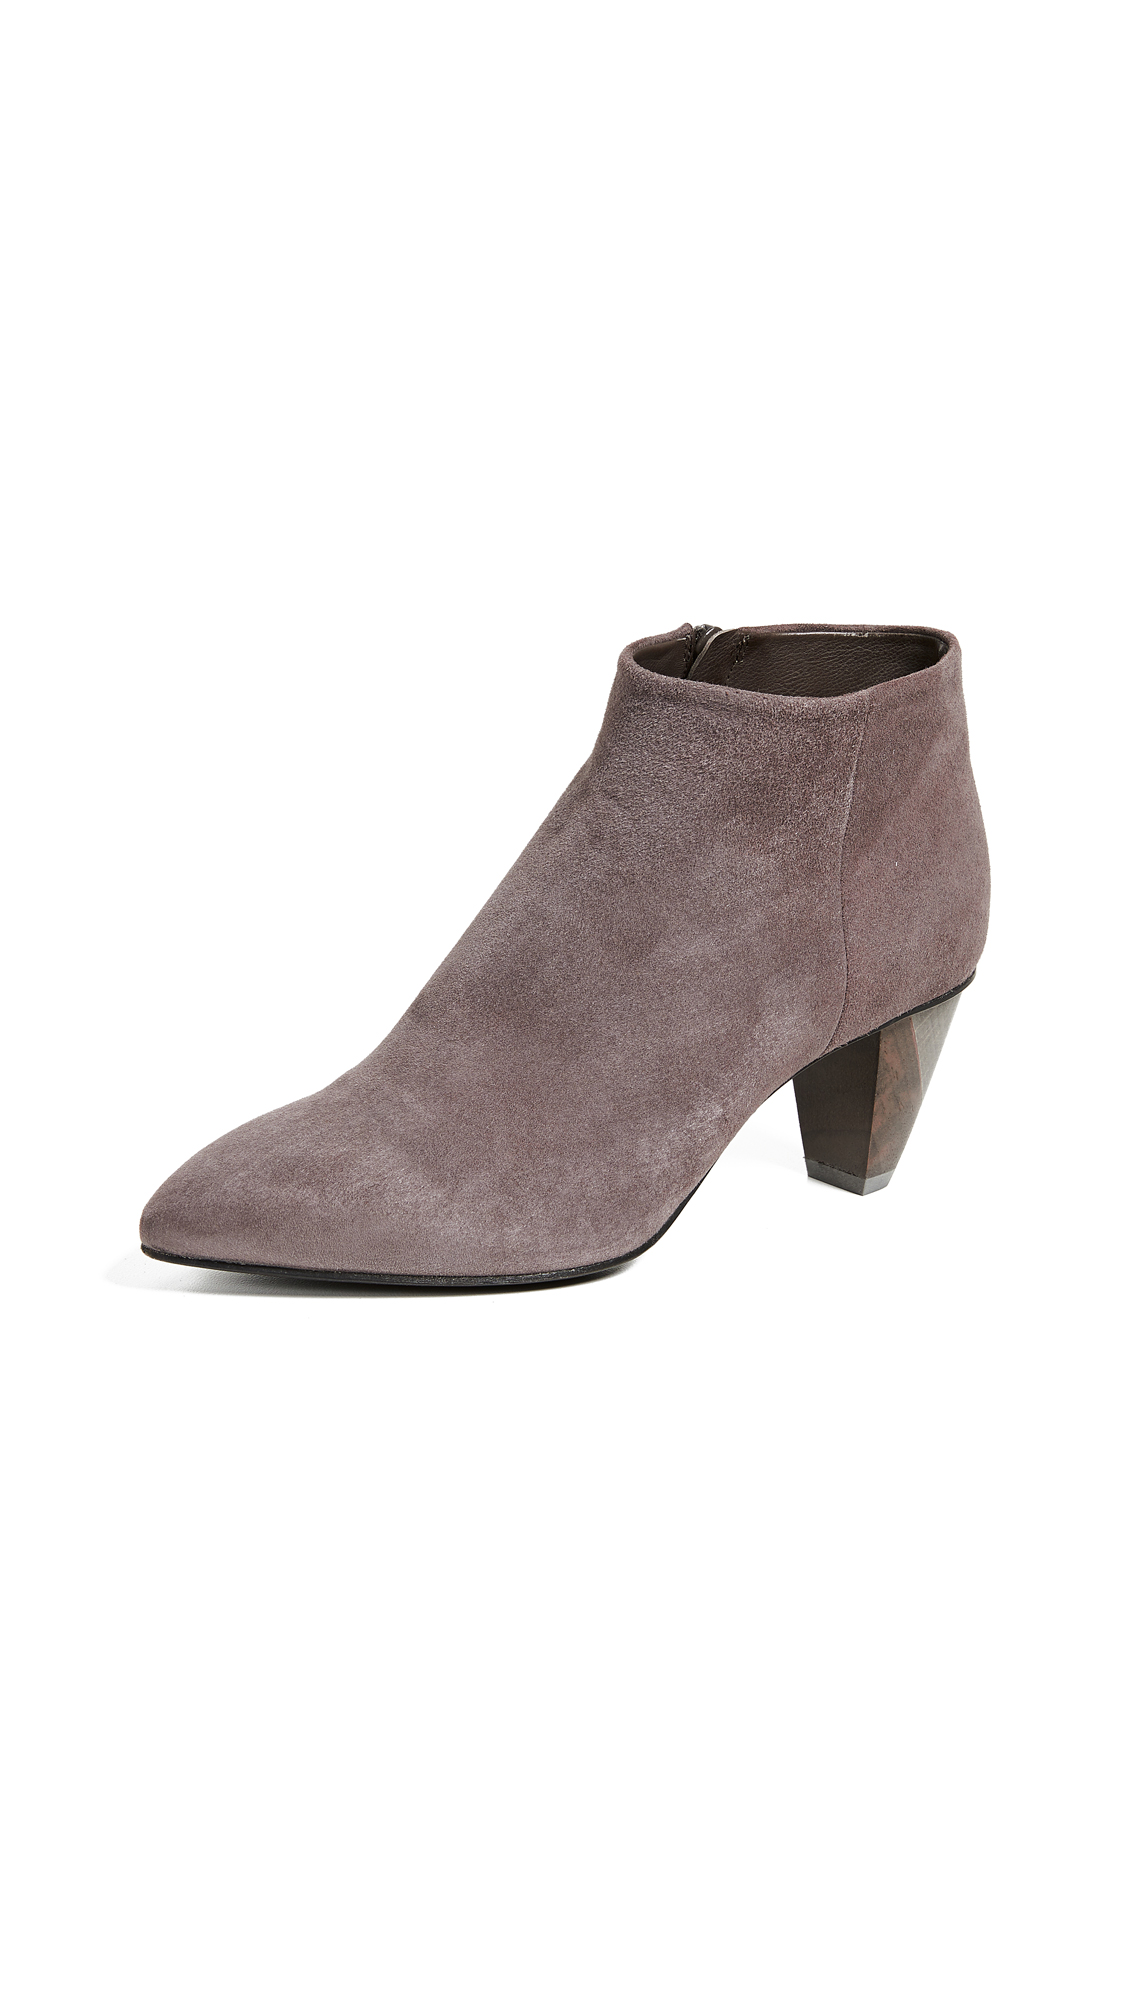 Coclico Shoes Jalapa Point Toe Booties - Ante Cinder